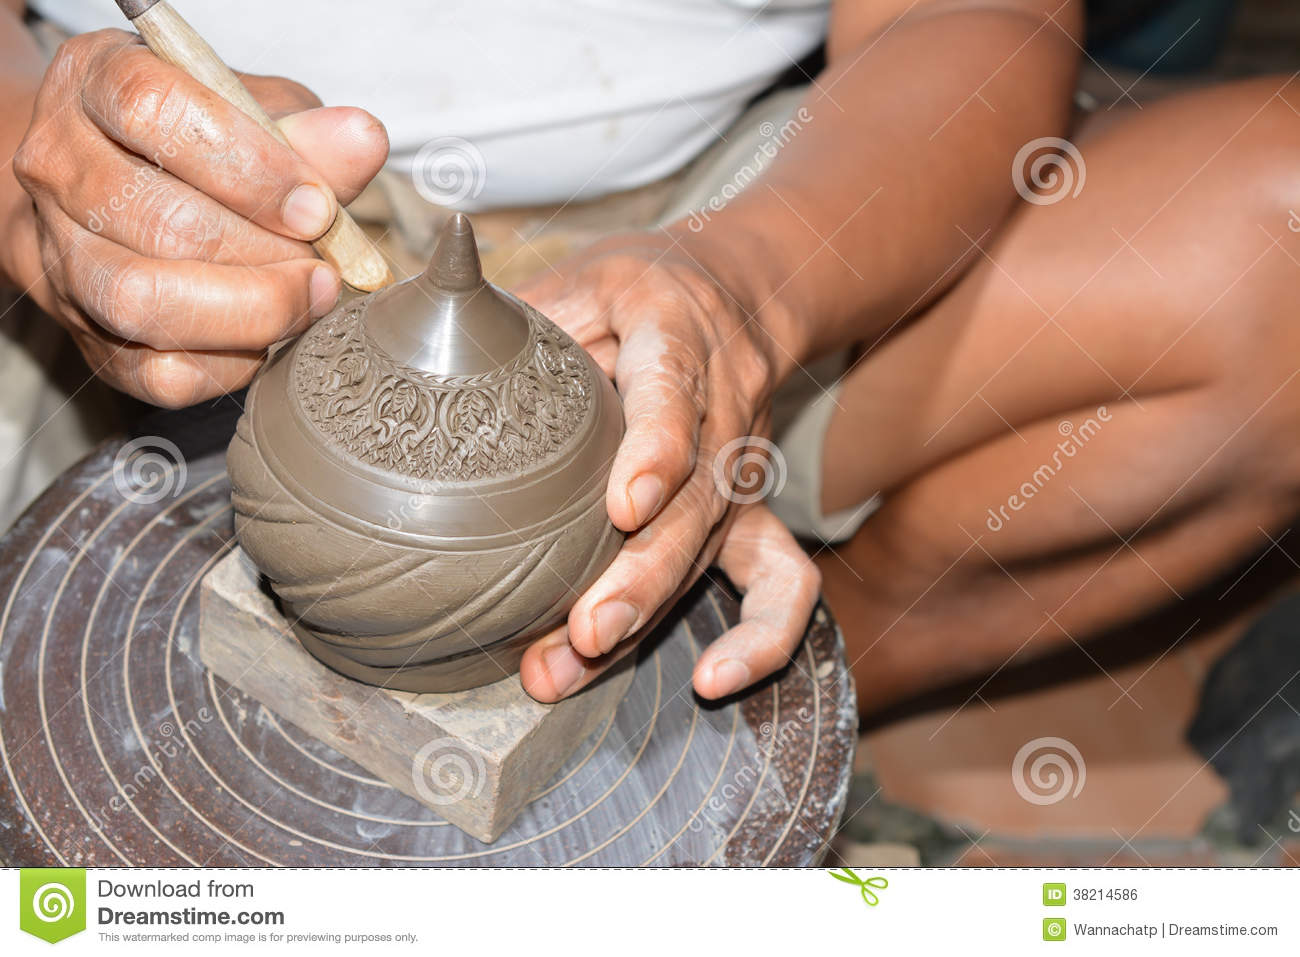 Http Www Dreamstime Com Royalty Free Stock Image Pottery Making Process Image38214586